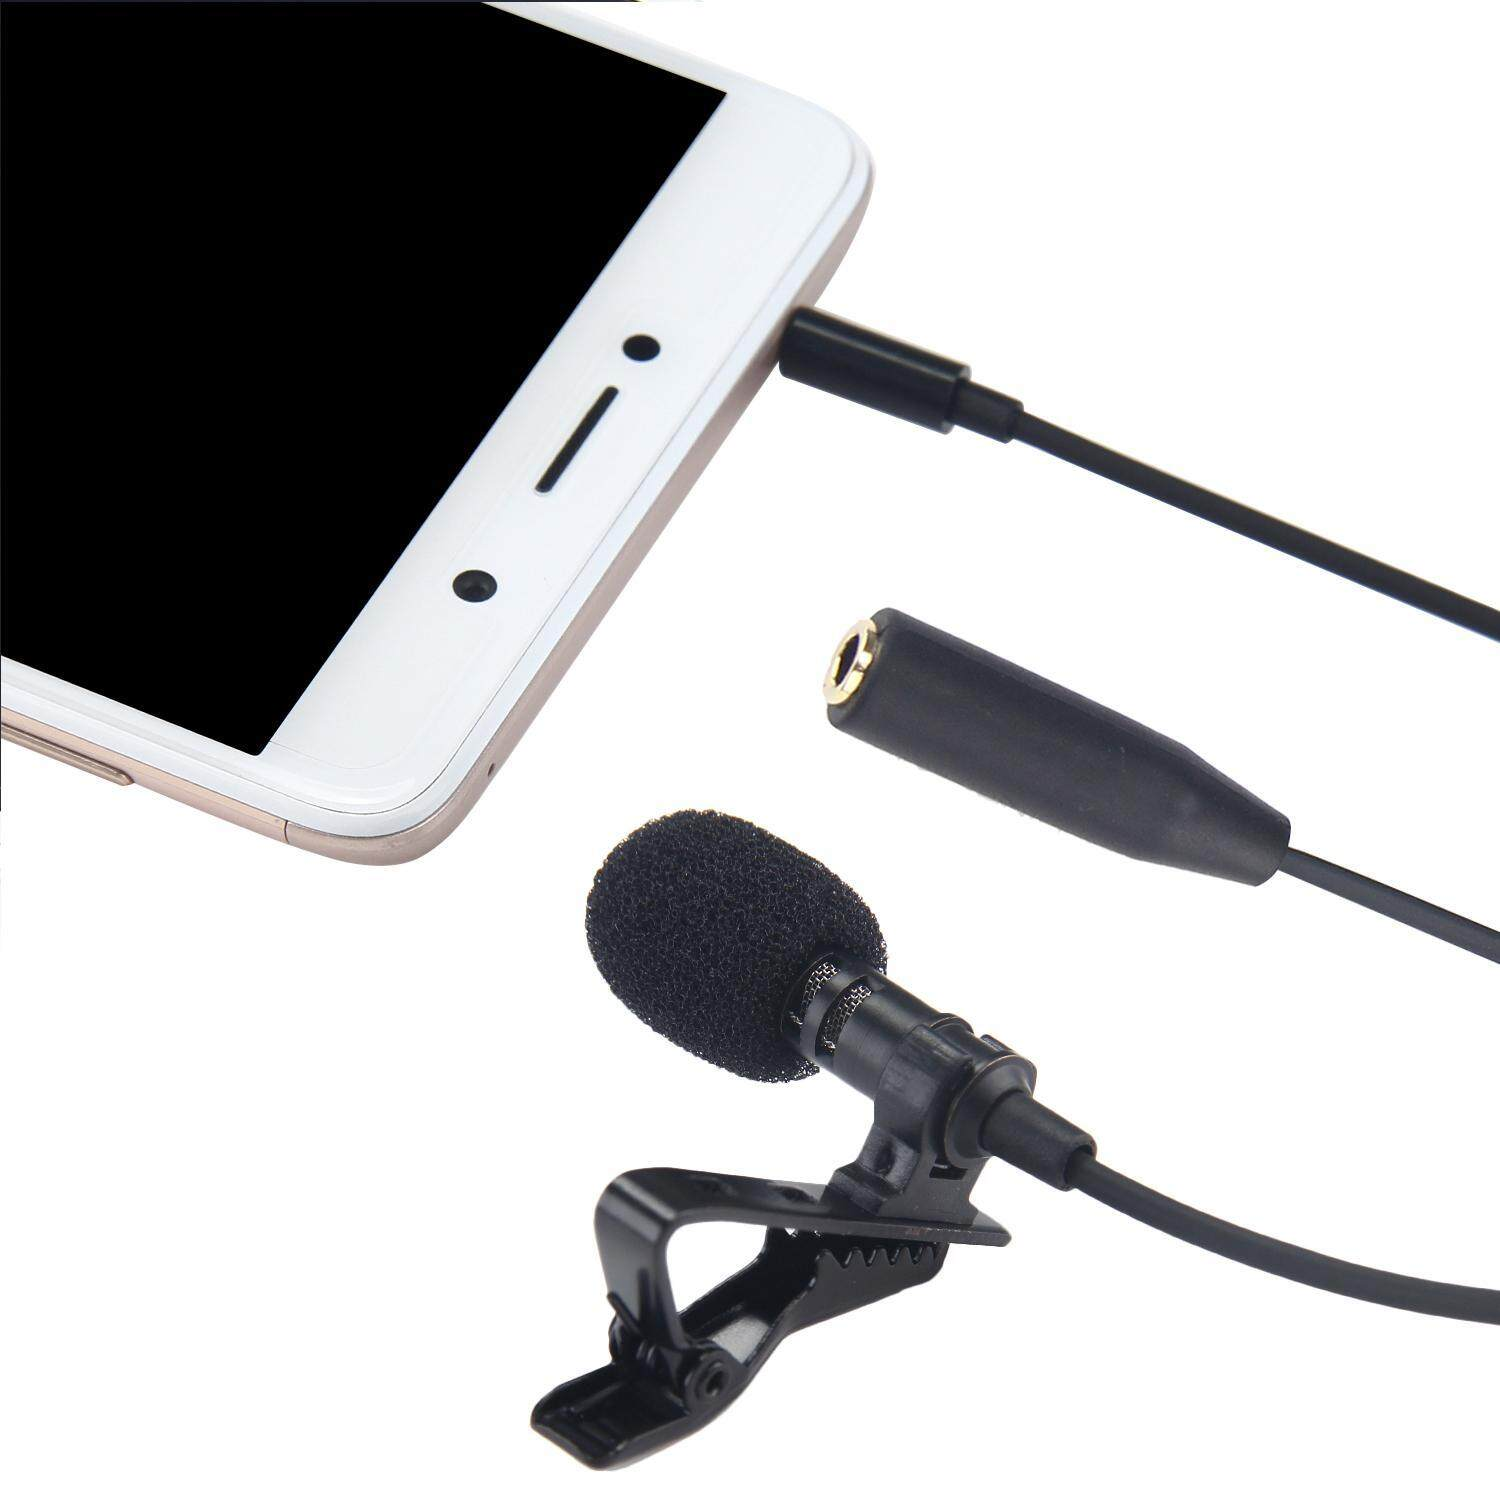 Teekeer Lavalier Lapel Microphone Clip-on Omnidirectional Condenser Mic For Apple IPhone, IPad, IPod Touch, Samsung Windows Devices